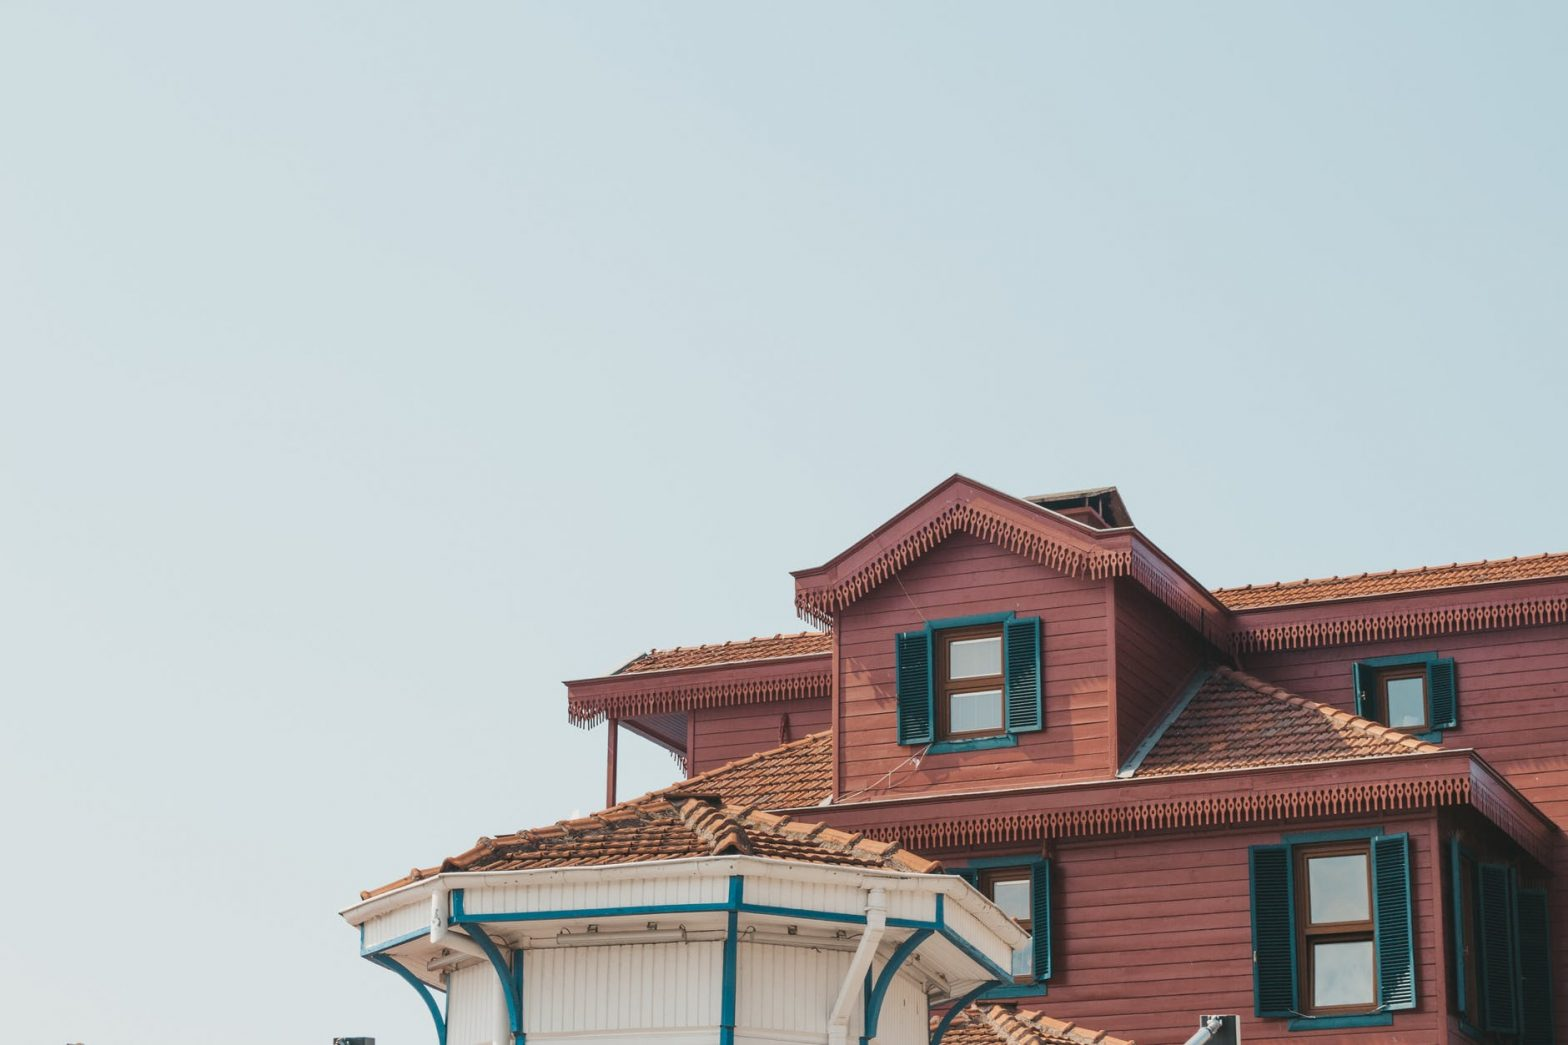 How You Can Make Your Roof Look More Appealing